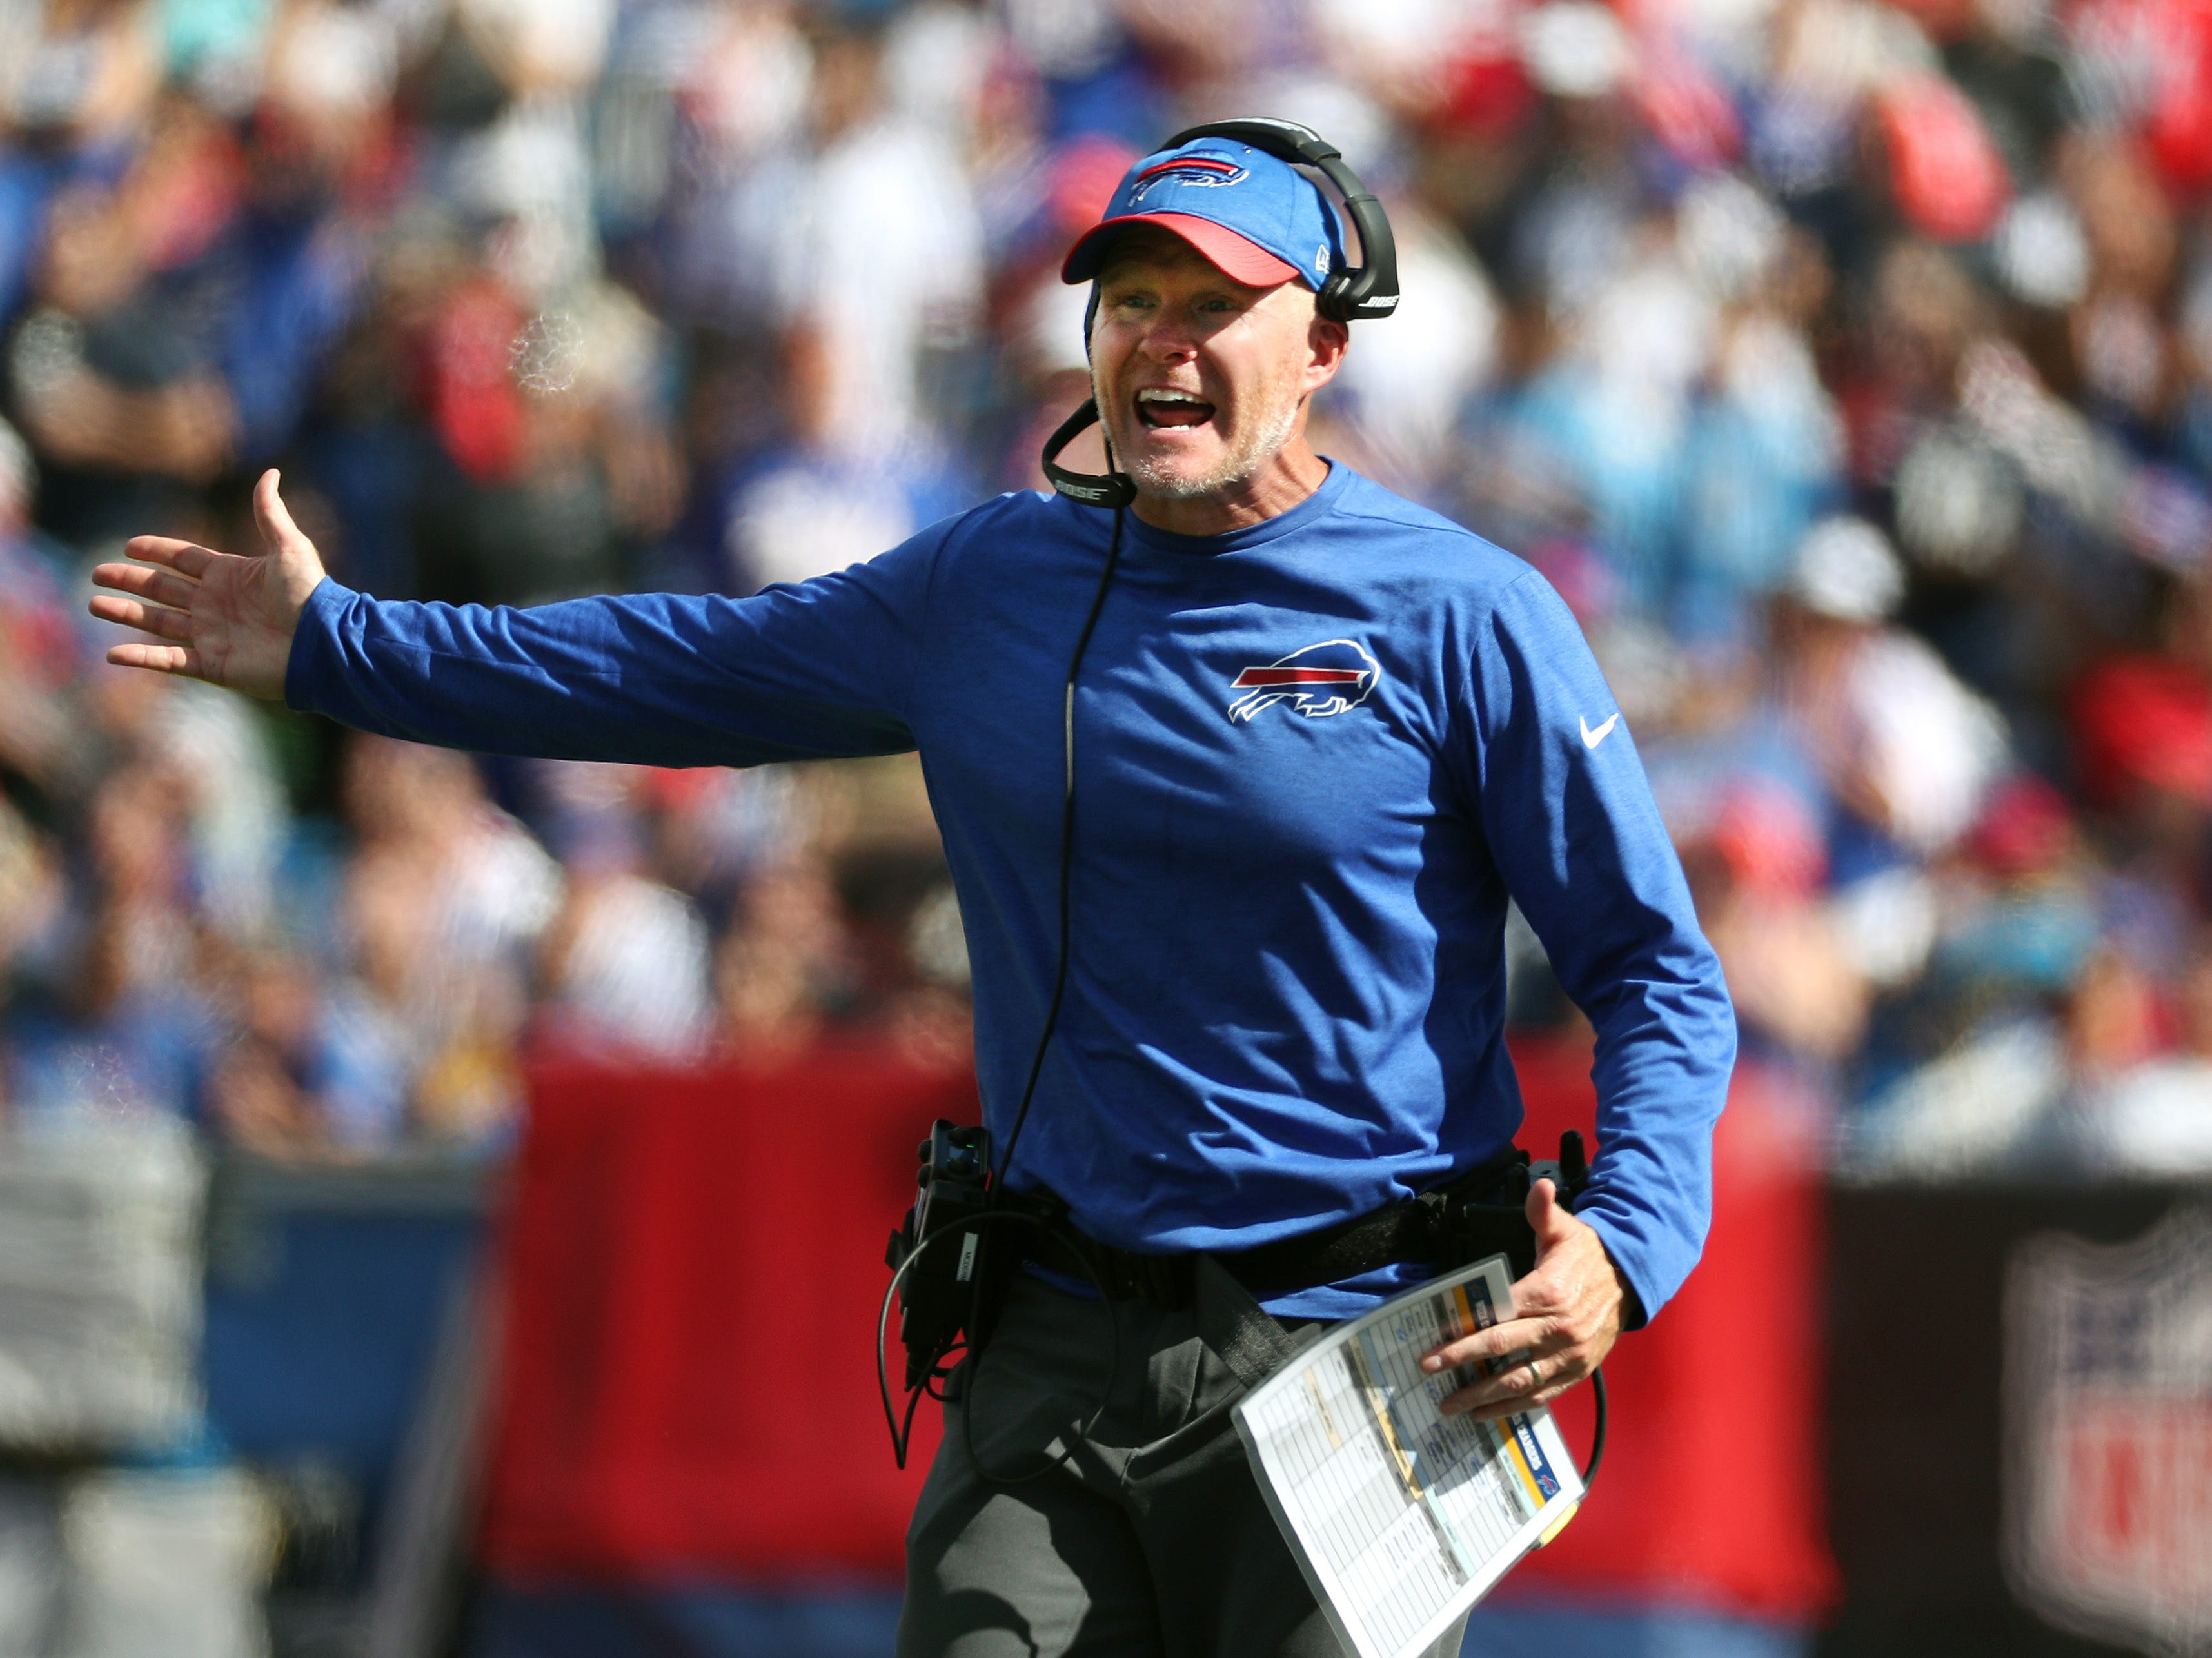 Bills head coach Sean McDermott looks for an explanation  from officials on a call.